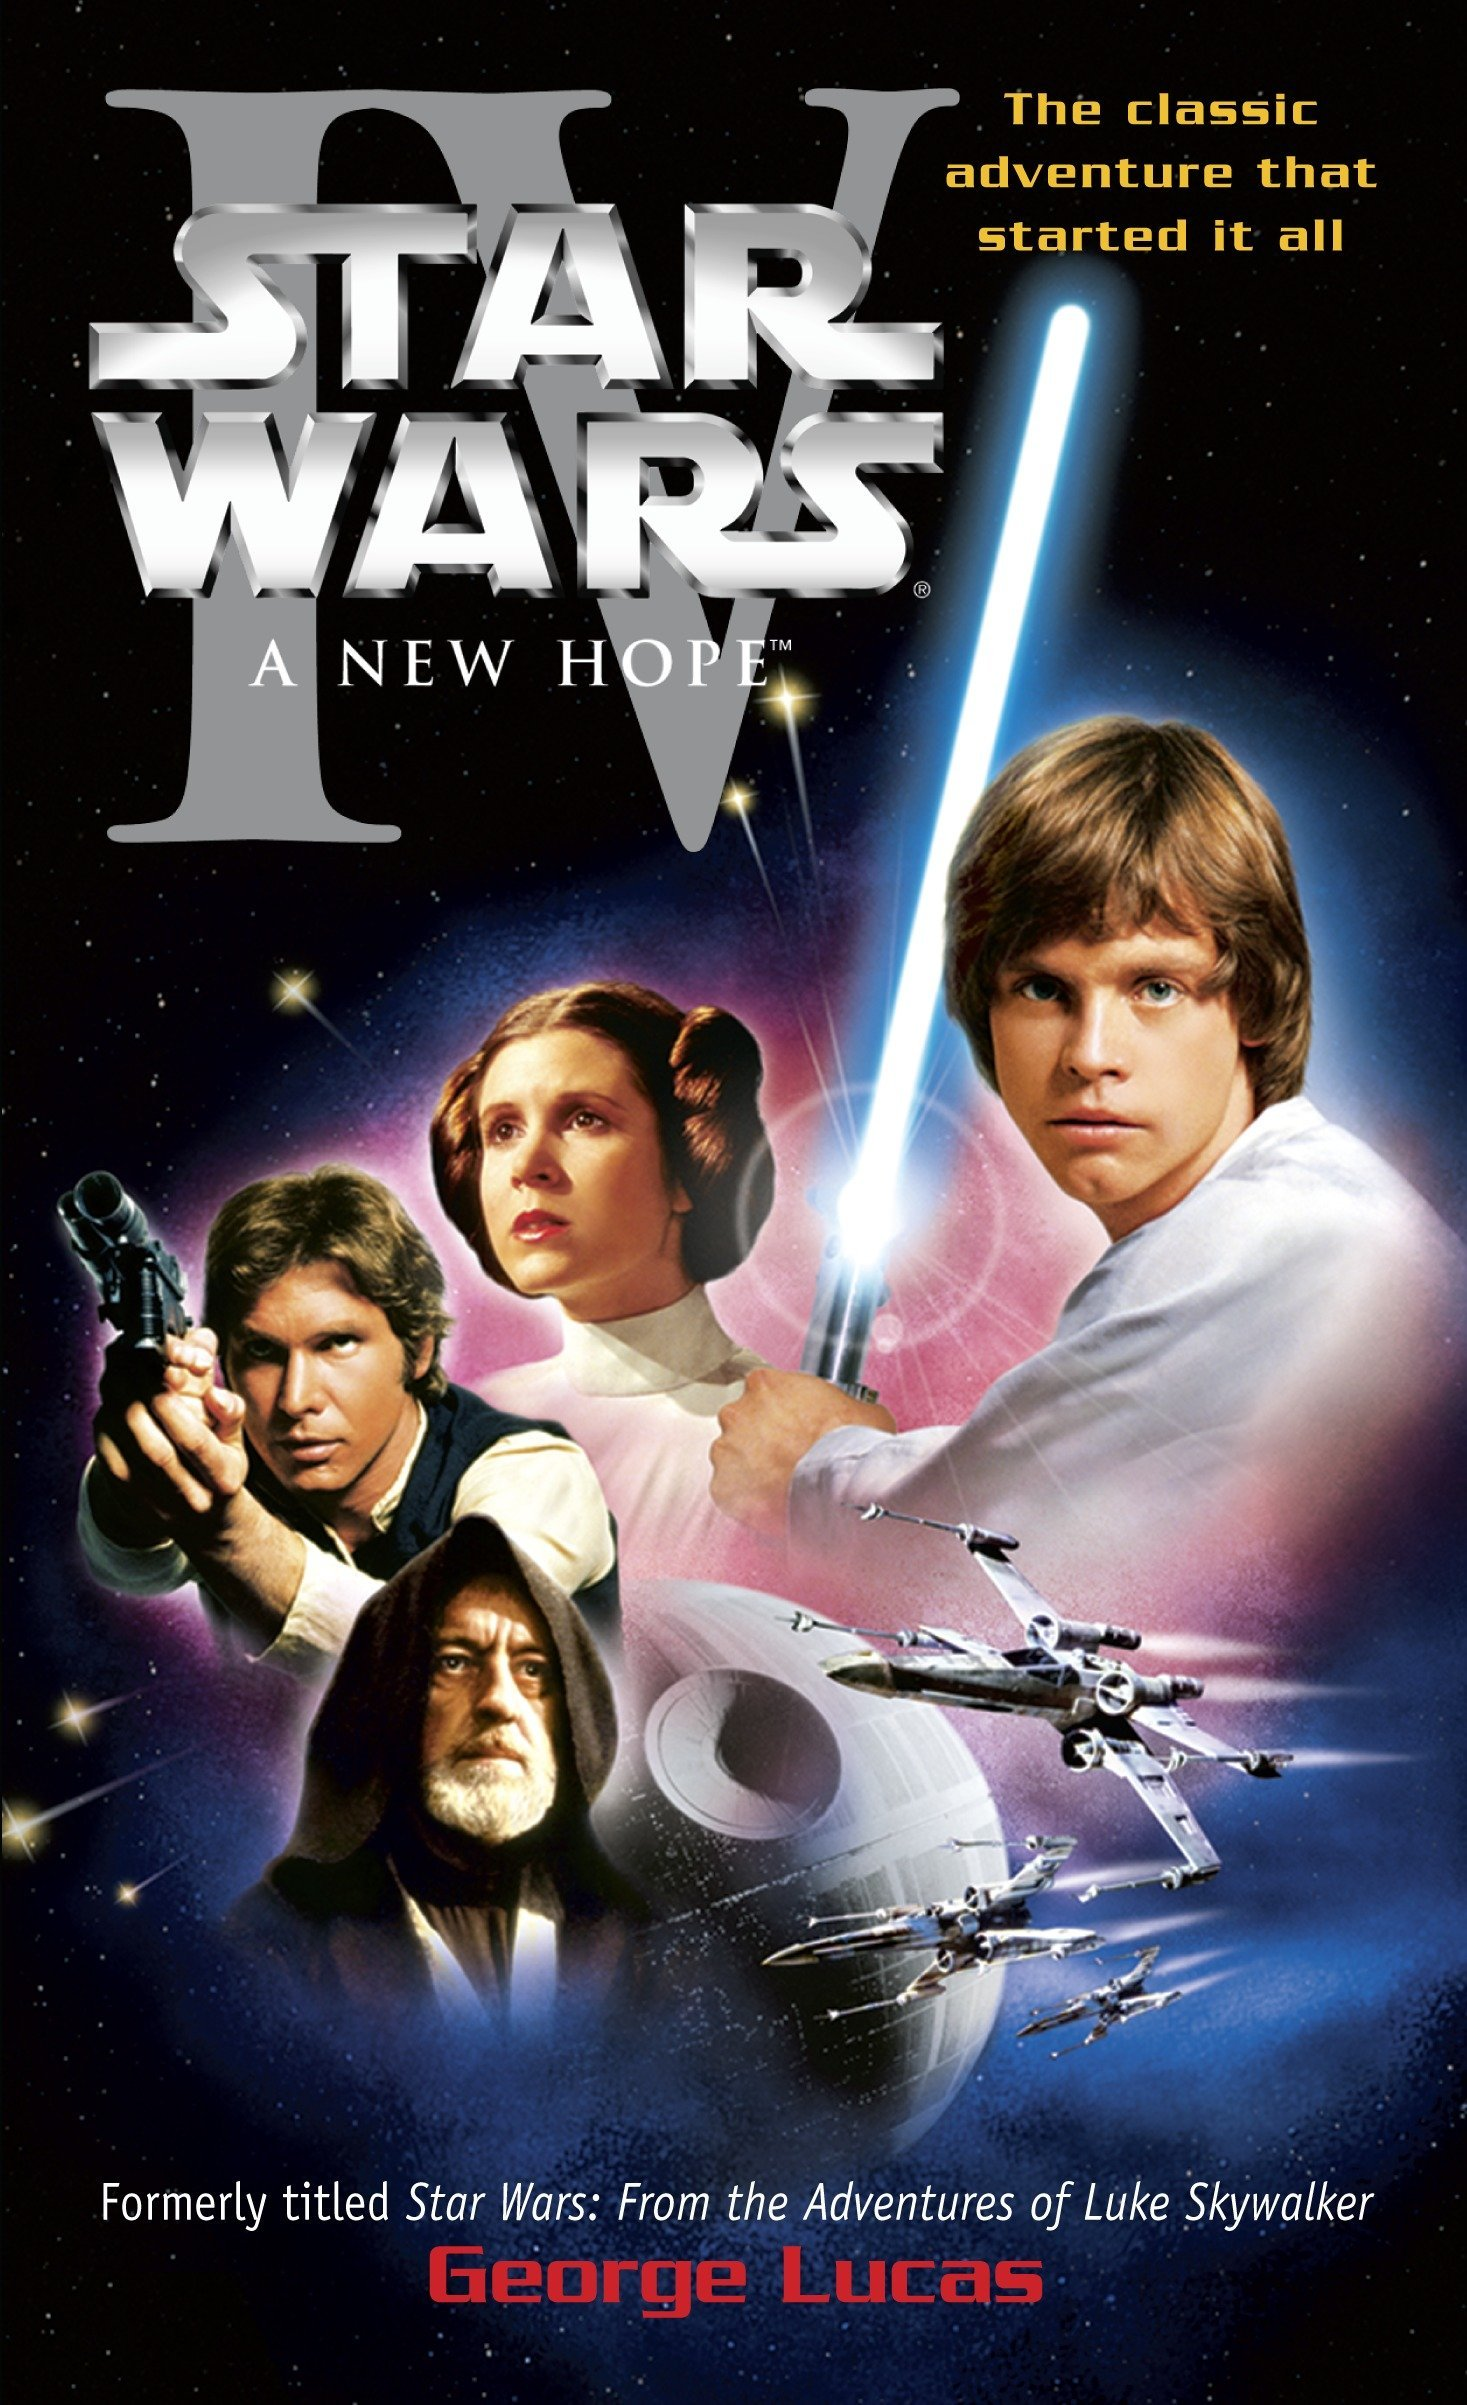 A New Hope Star Wars Episode Iv Lucas George 9780345341464 Books Amazon Ca